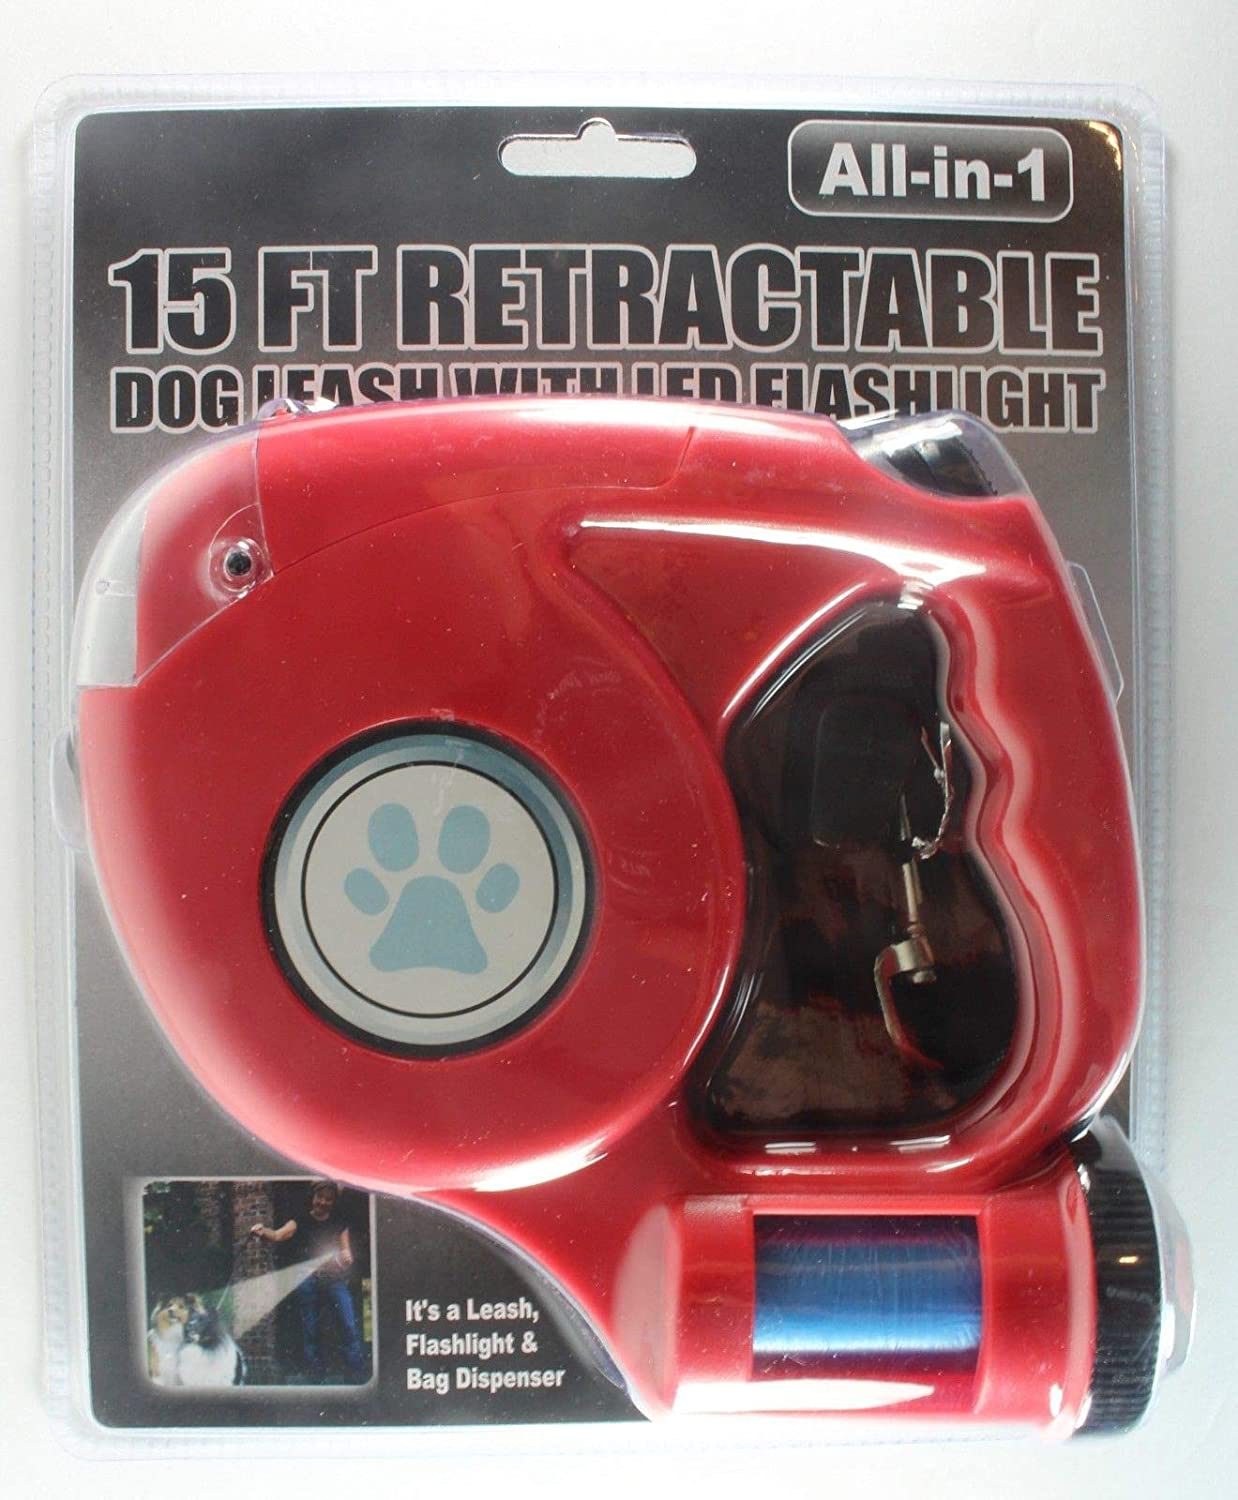 All In 1 Dog Leash 15 Feet Retractable W Led Flashlight Wire Harness And Bag Dispenser Red Pet Supplies